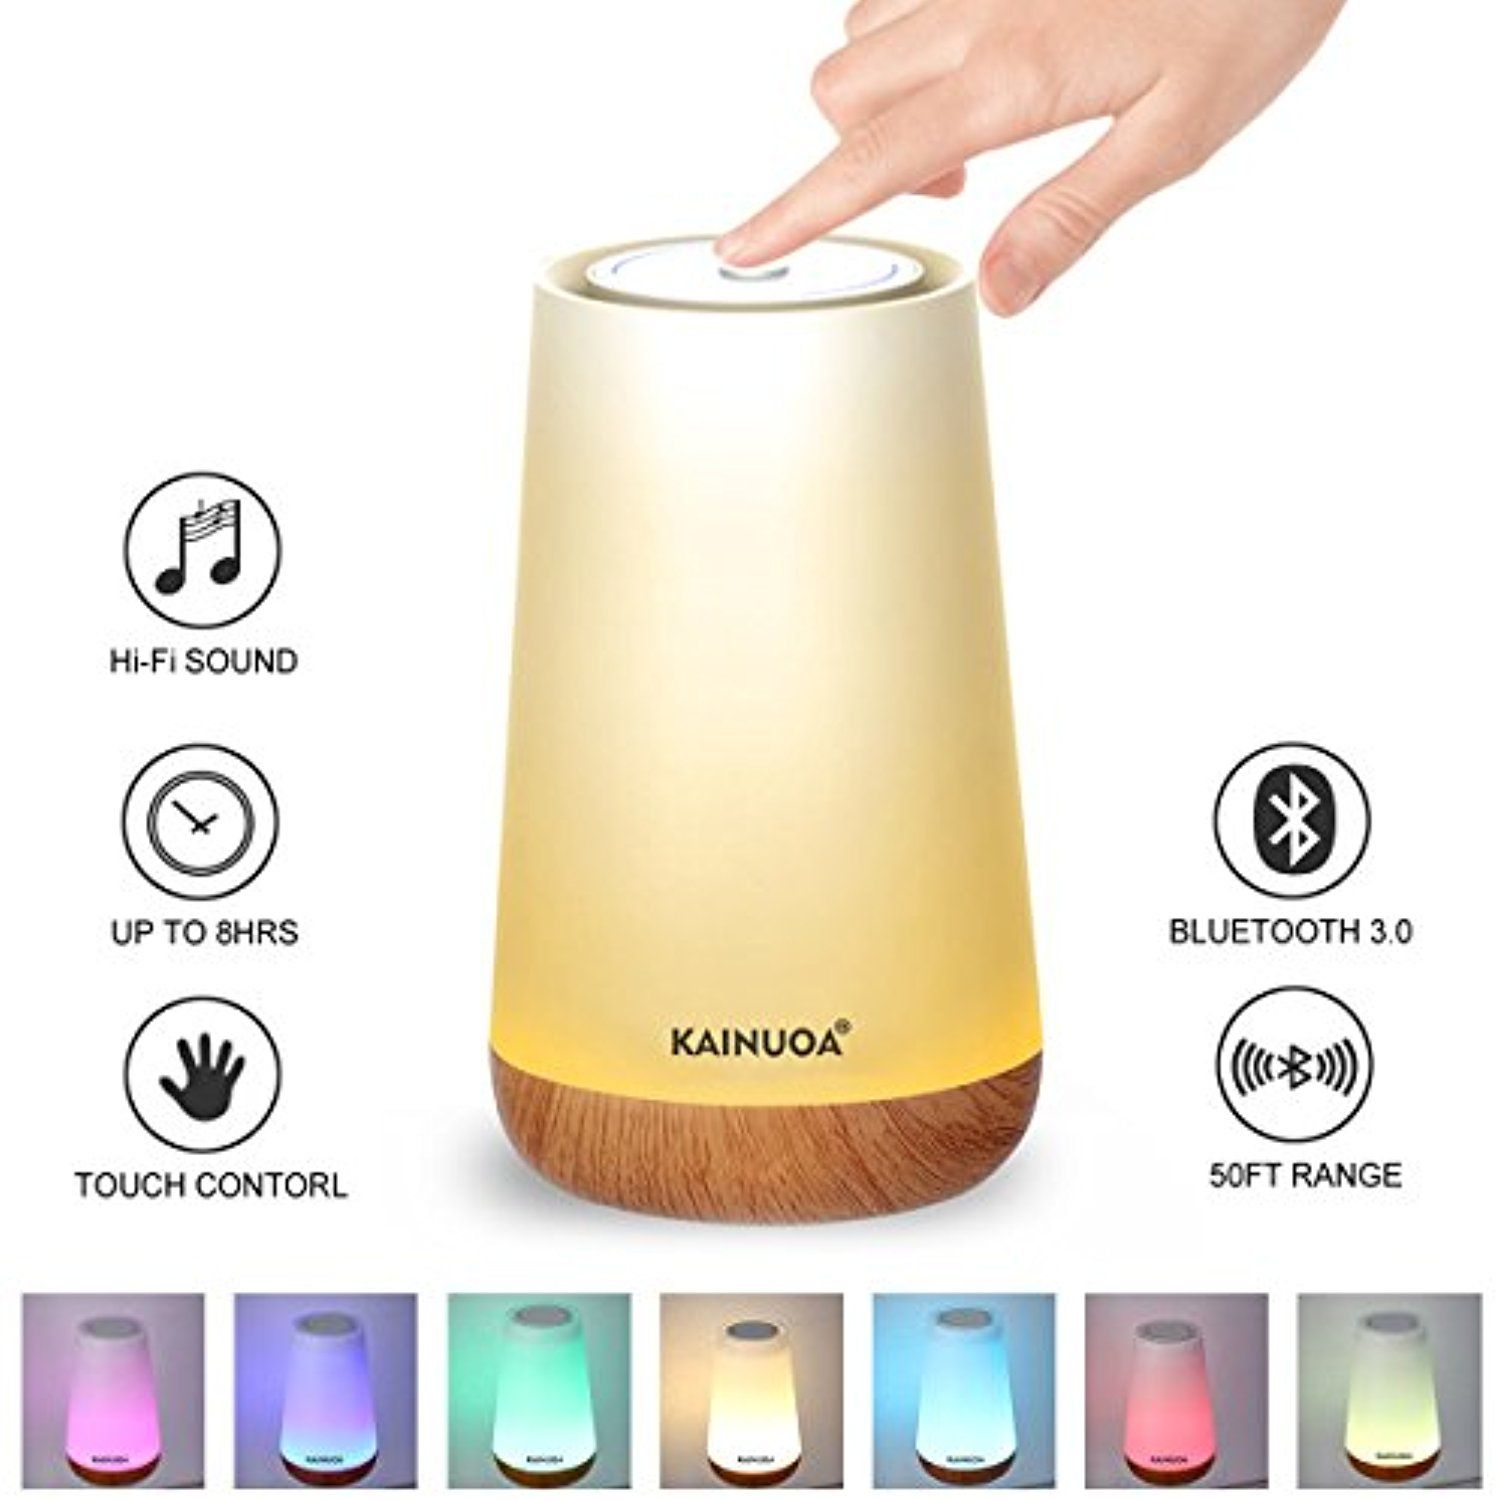 Touch Control Table Lamp Kainuoa Led Smart Touch Lamp With Bluetooth Speaker Control Night Light And Dimmable Color Control L Touch Lamp Lamp Night Light Lamp